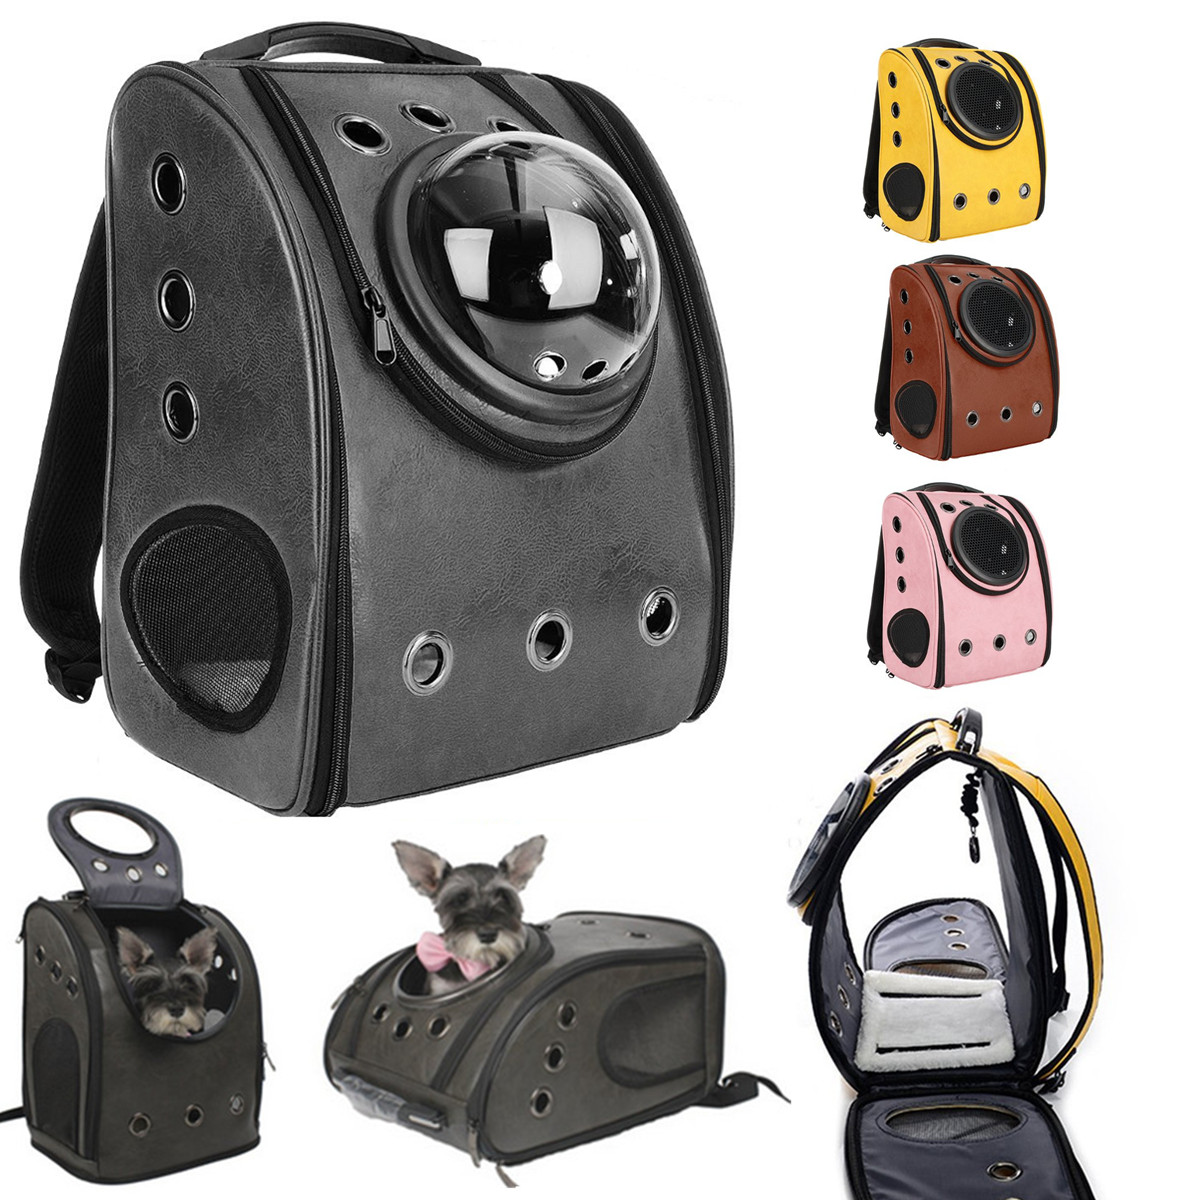 Portable Pet Carrier Space Astronaut Capsule Backpack Pet Bubble Traveler Knapsack Air Vents Waterproof Lightweight Handbag for Cats Small Dogs & Petite Animals